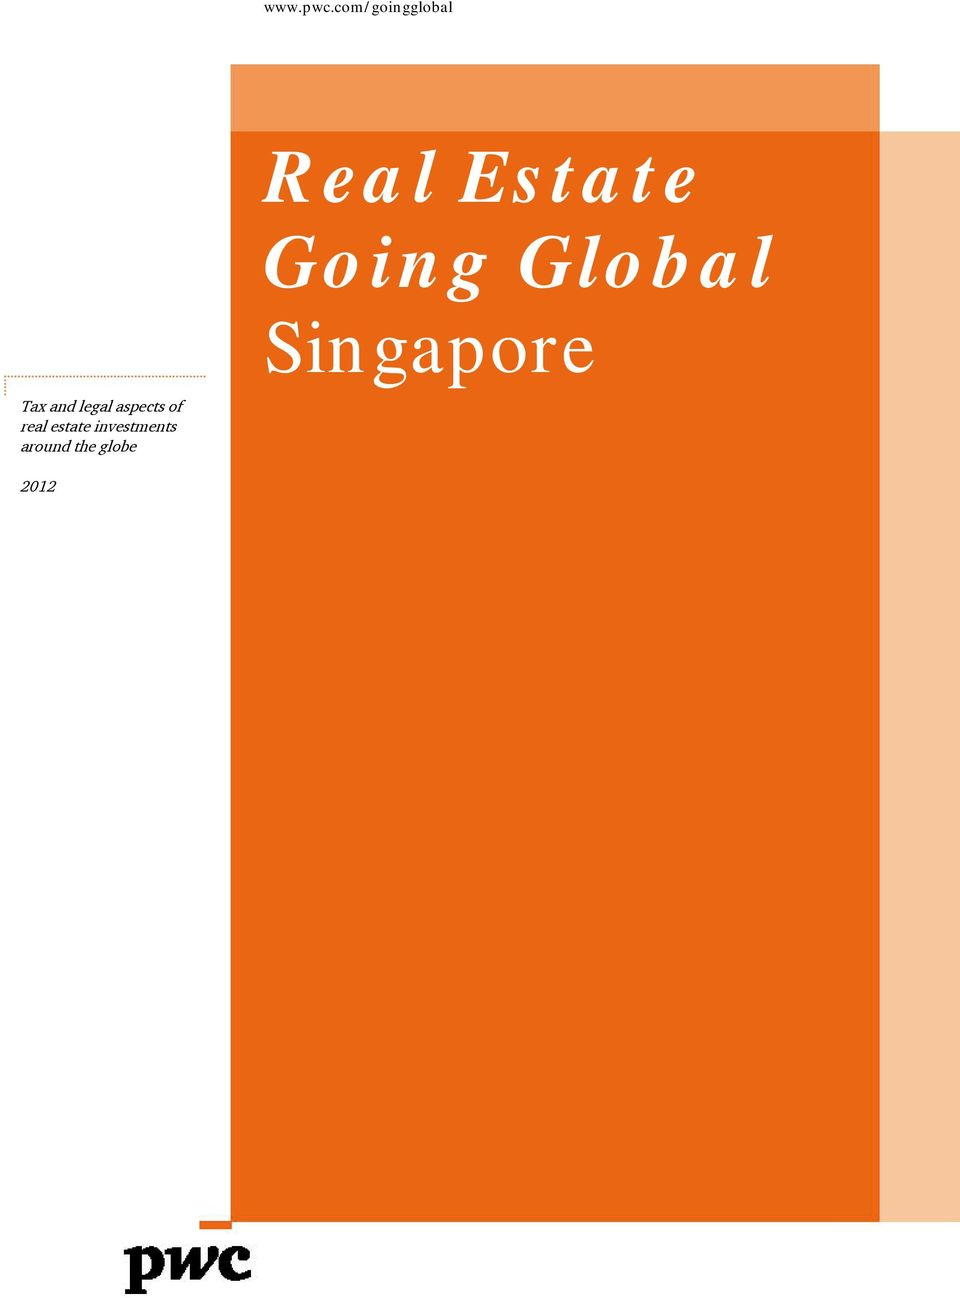 Singapore Tax and legal aspects of real